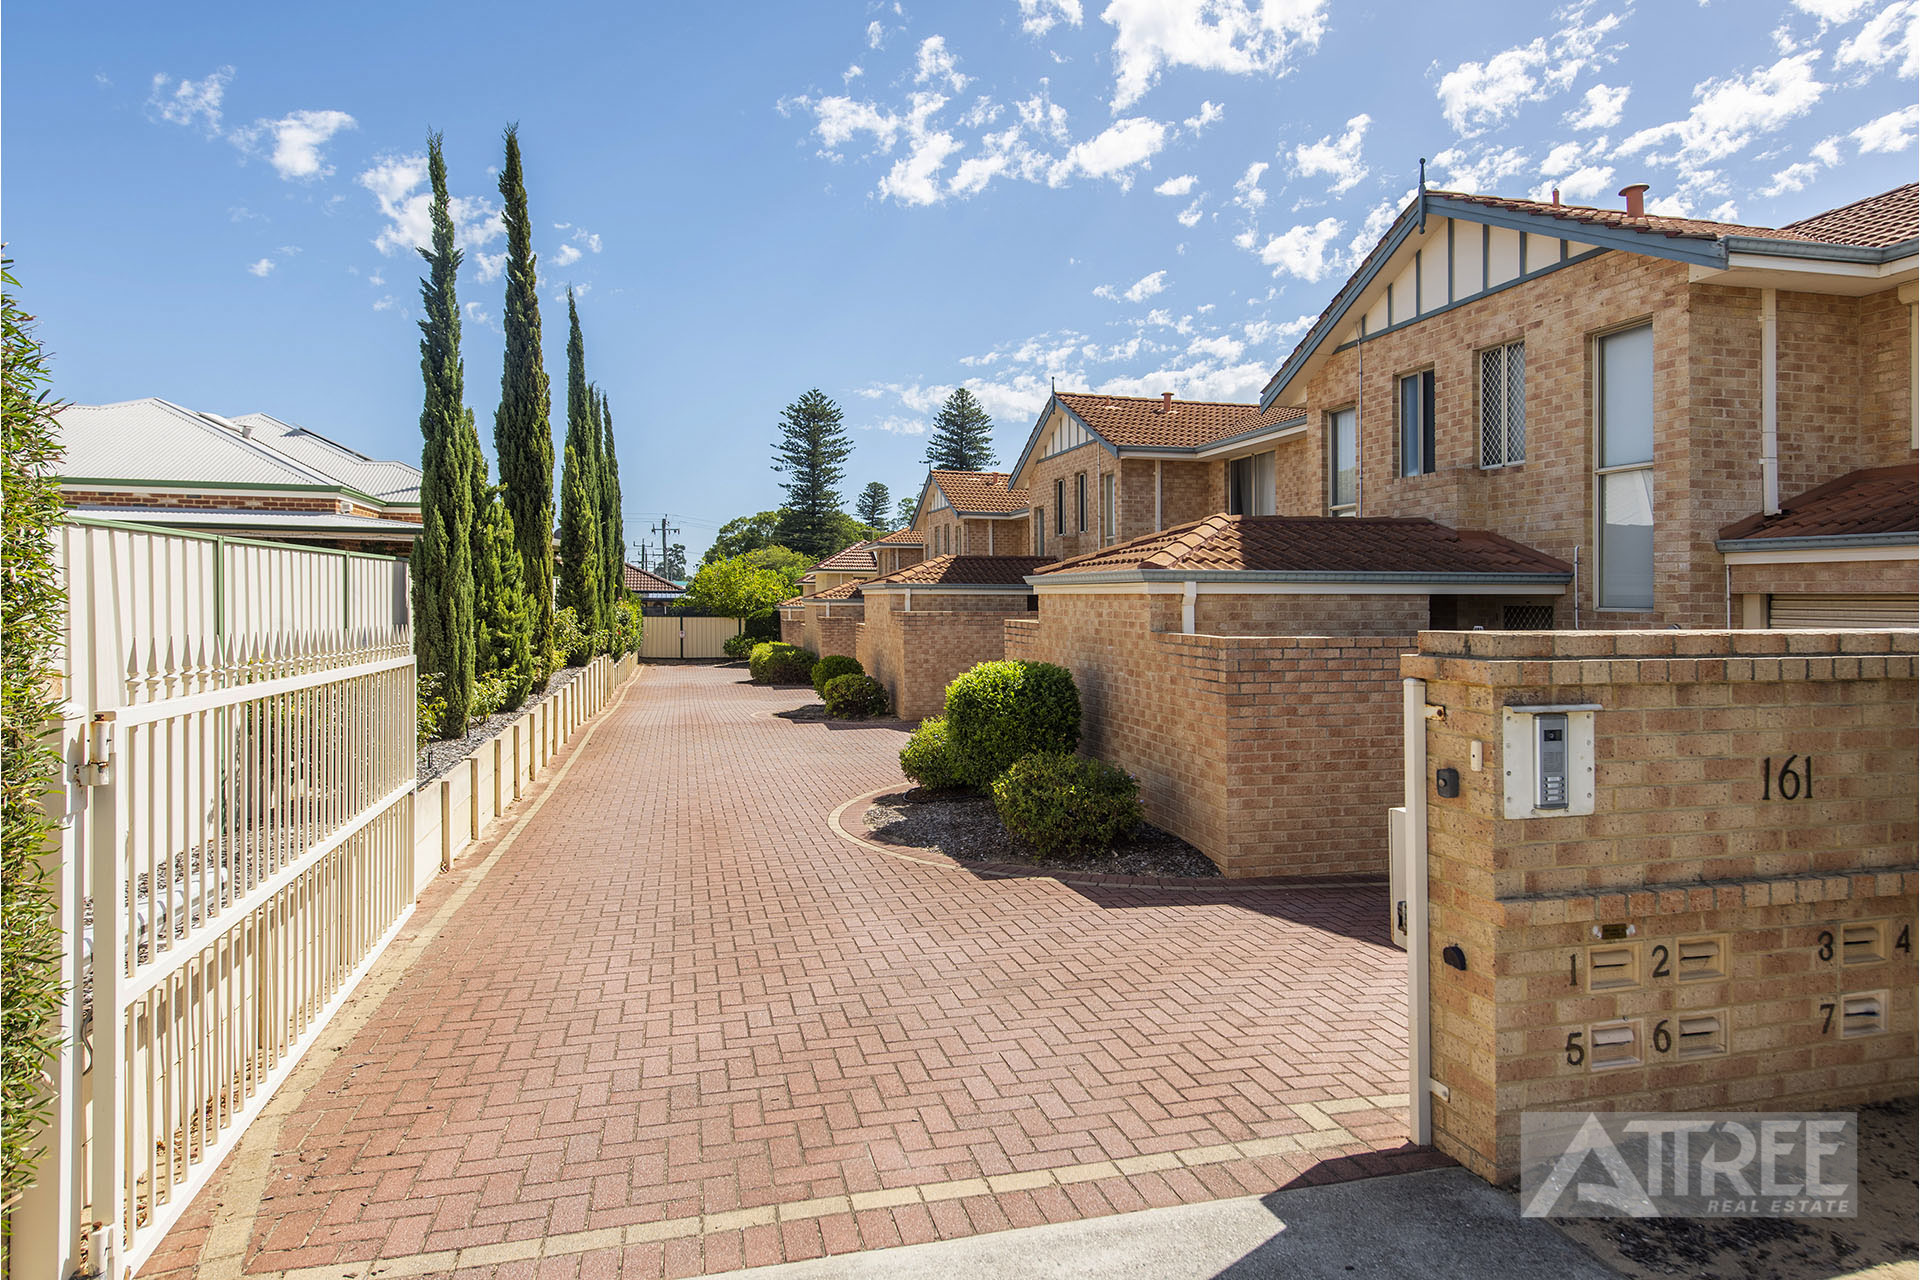 Property for sale in VICTORIA PARK, 6/161-163 Shepperton Road : Attree Real Estate